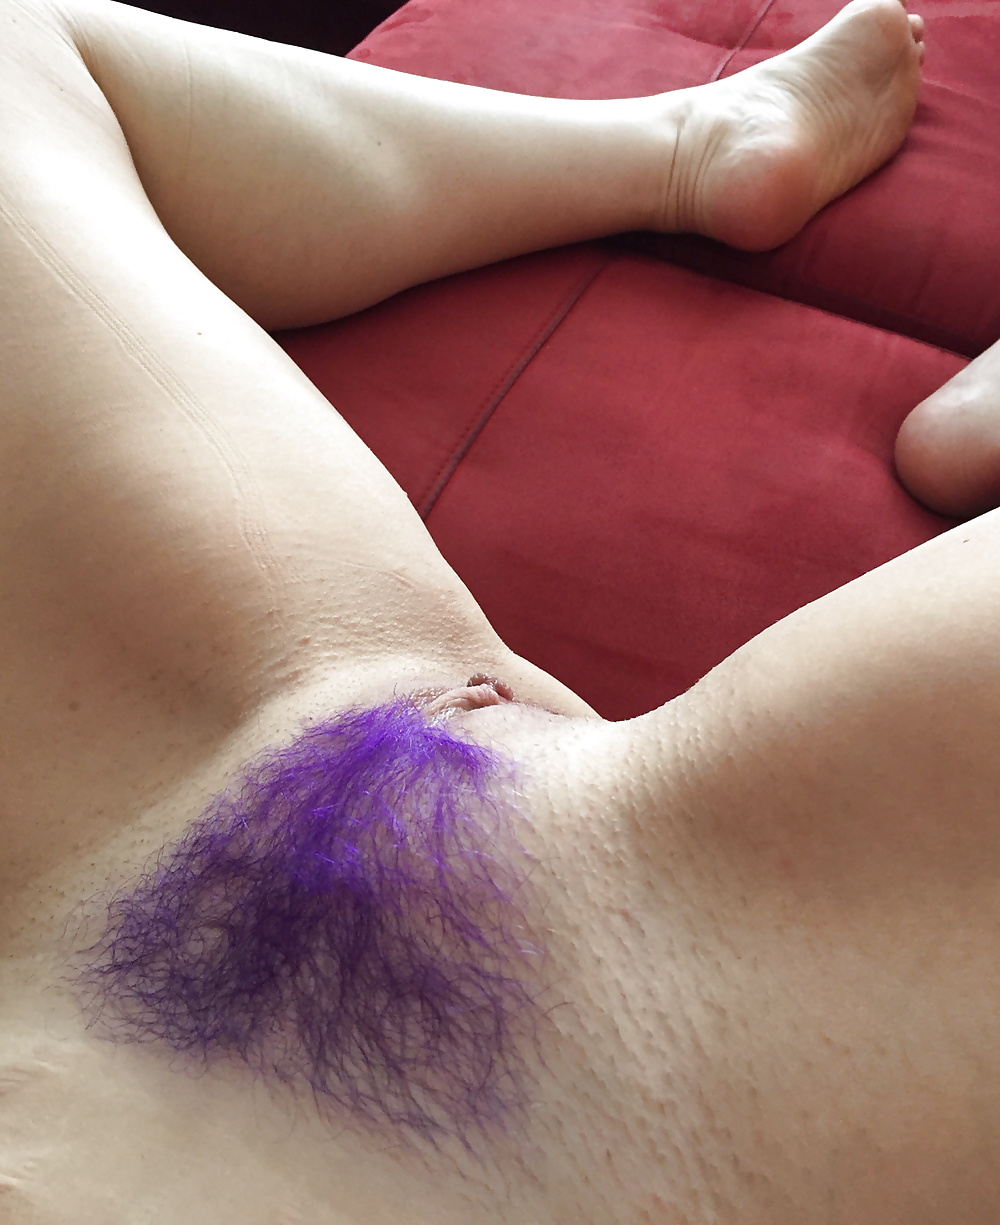 Lucy with a red triangle of pubic hairy porn